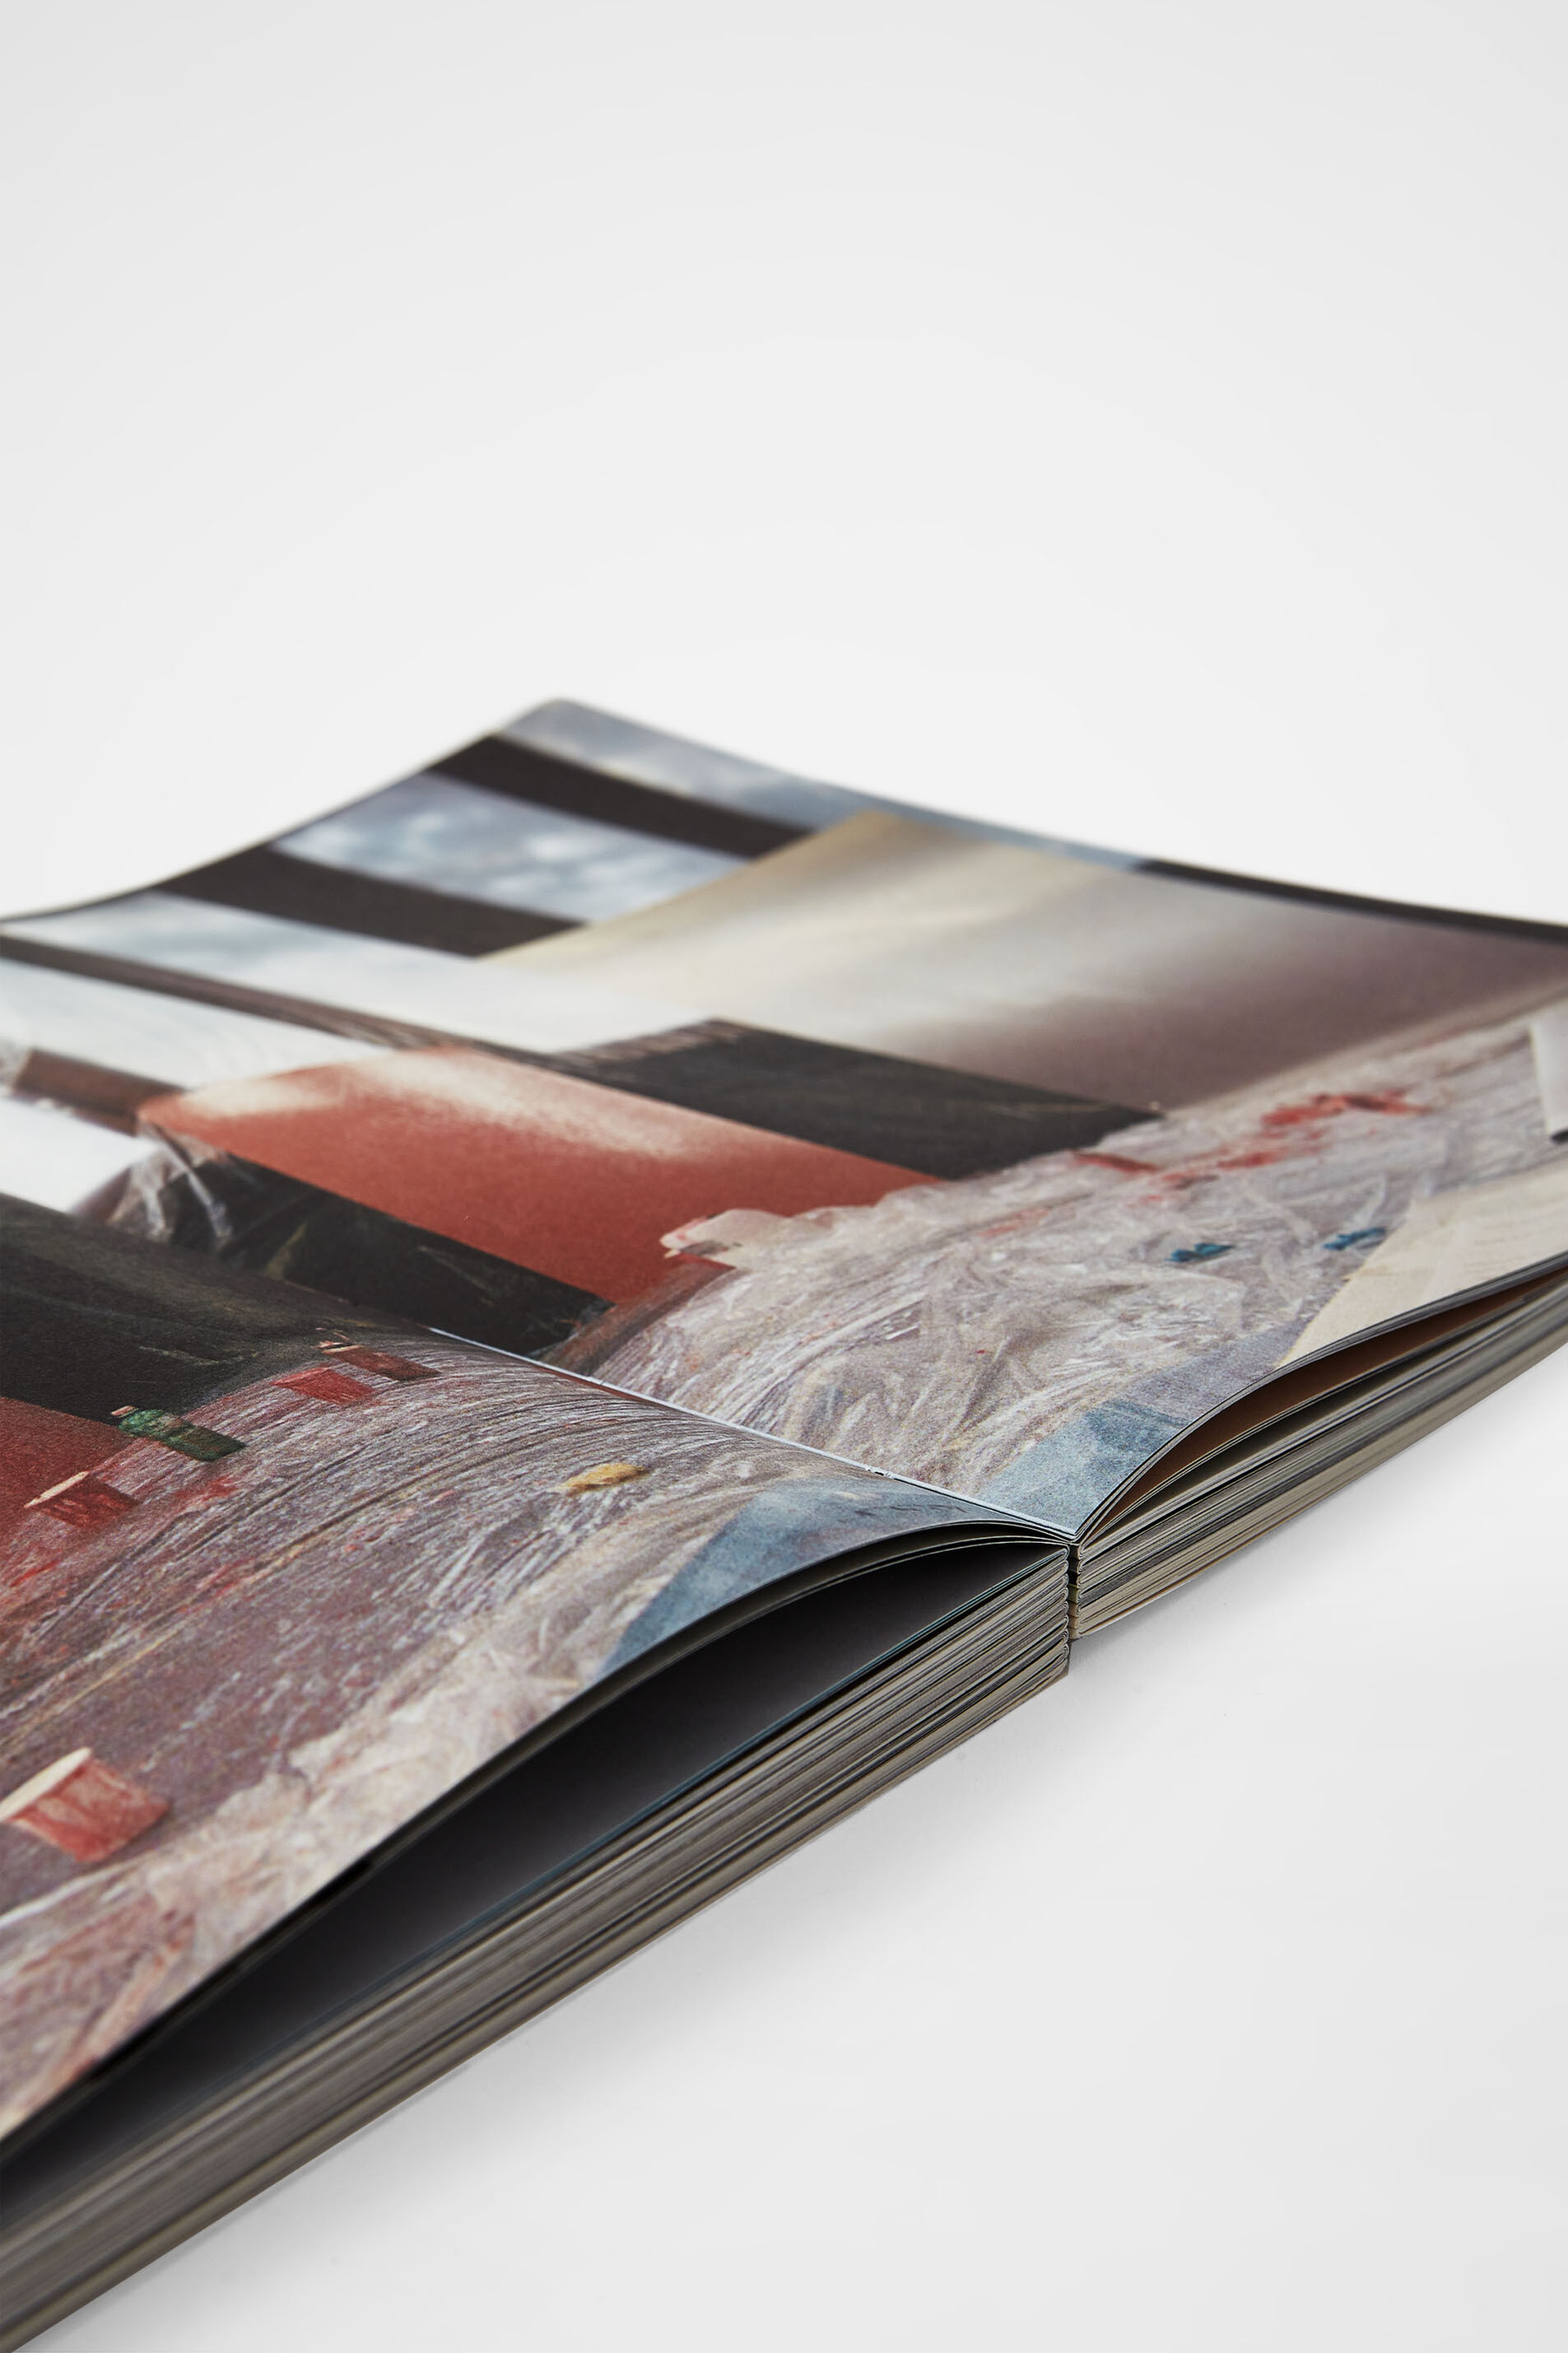 A MAGAZINE curated by Lucie and Luke Meier, multicolore, large